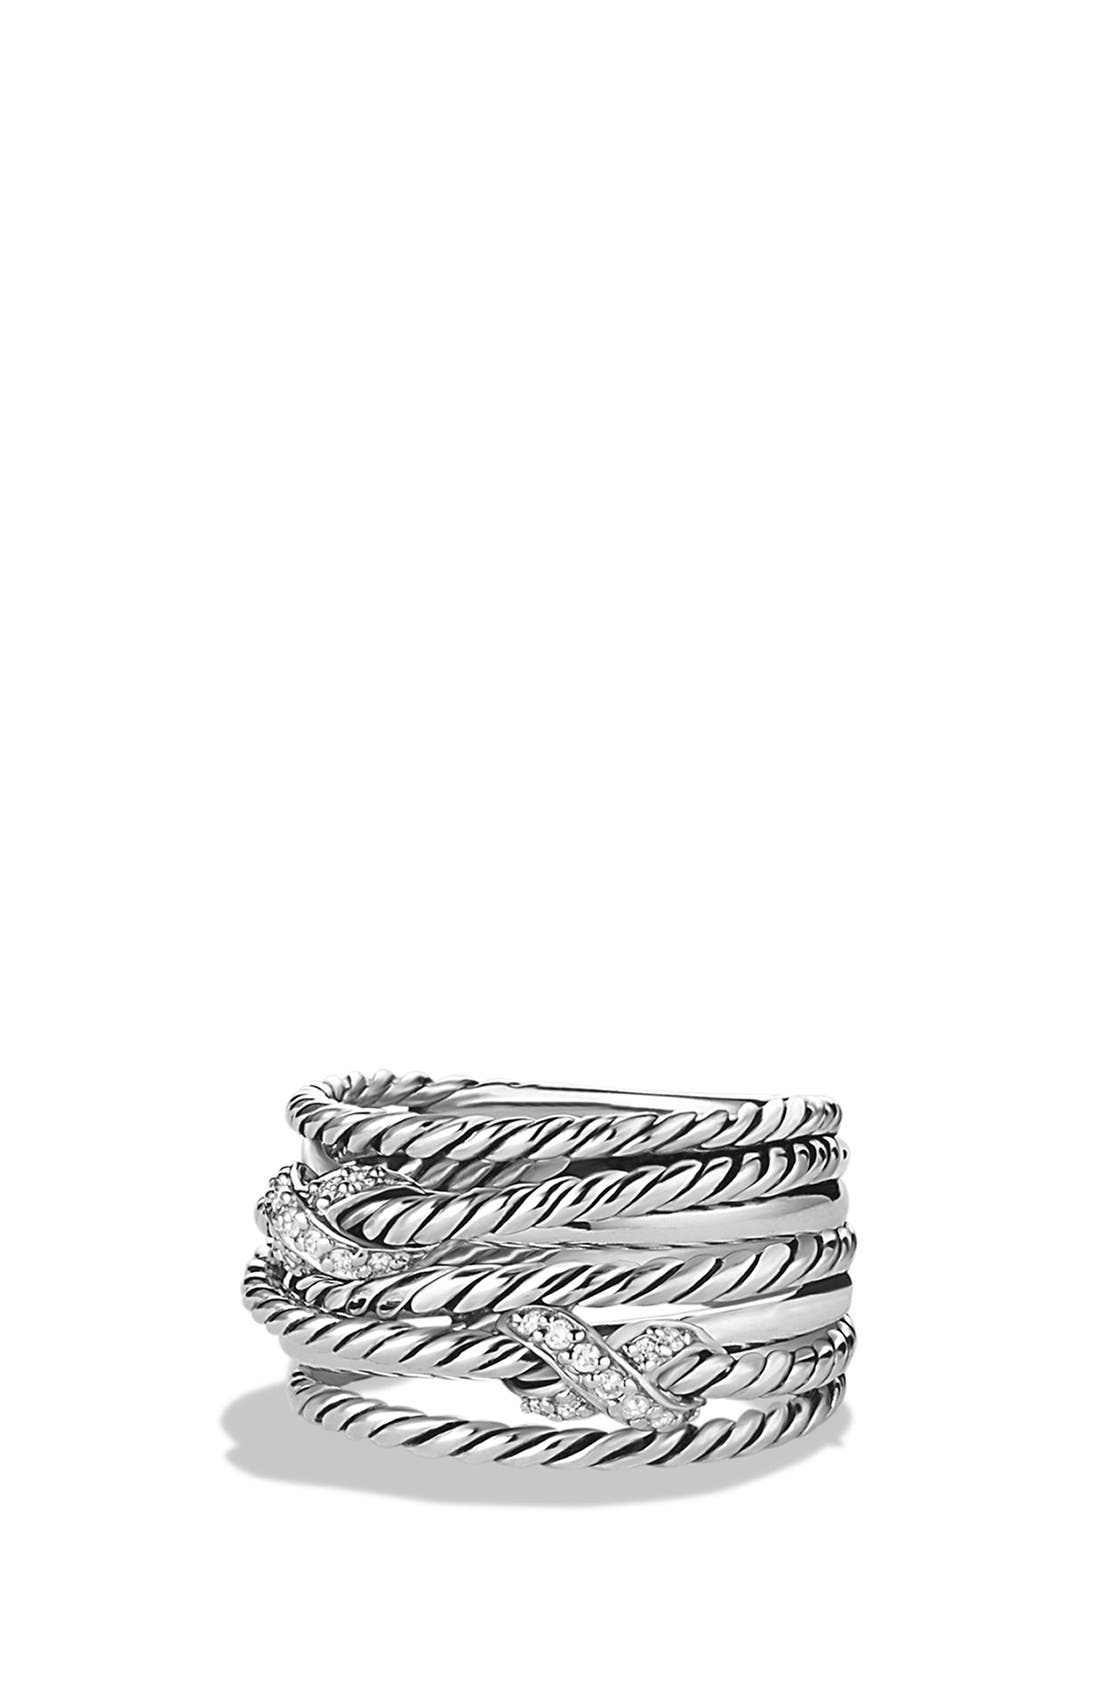 David Yurman Double 'X Crossover' Ring with Diamonds